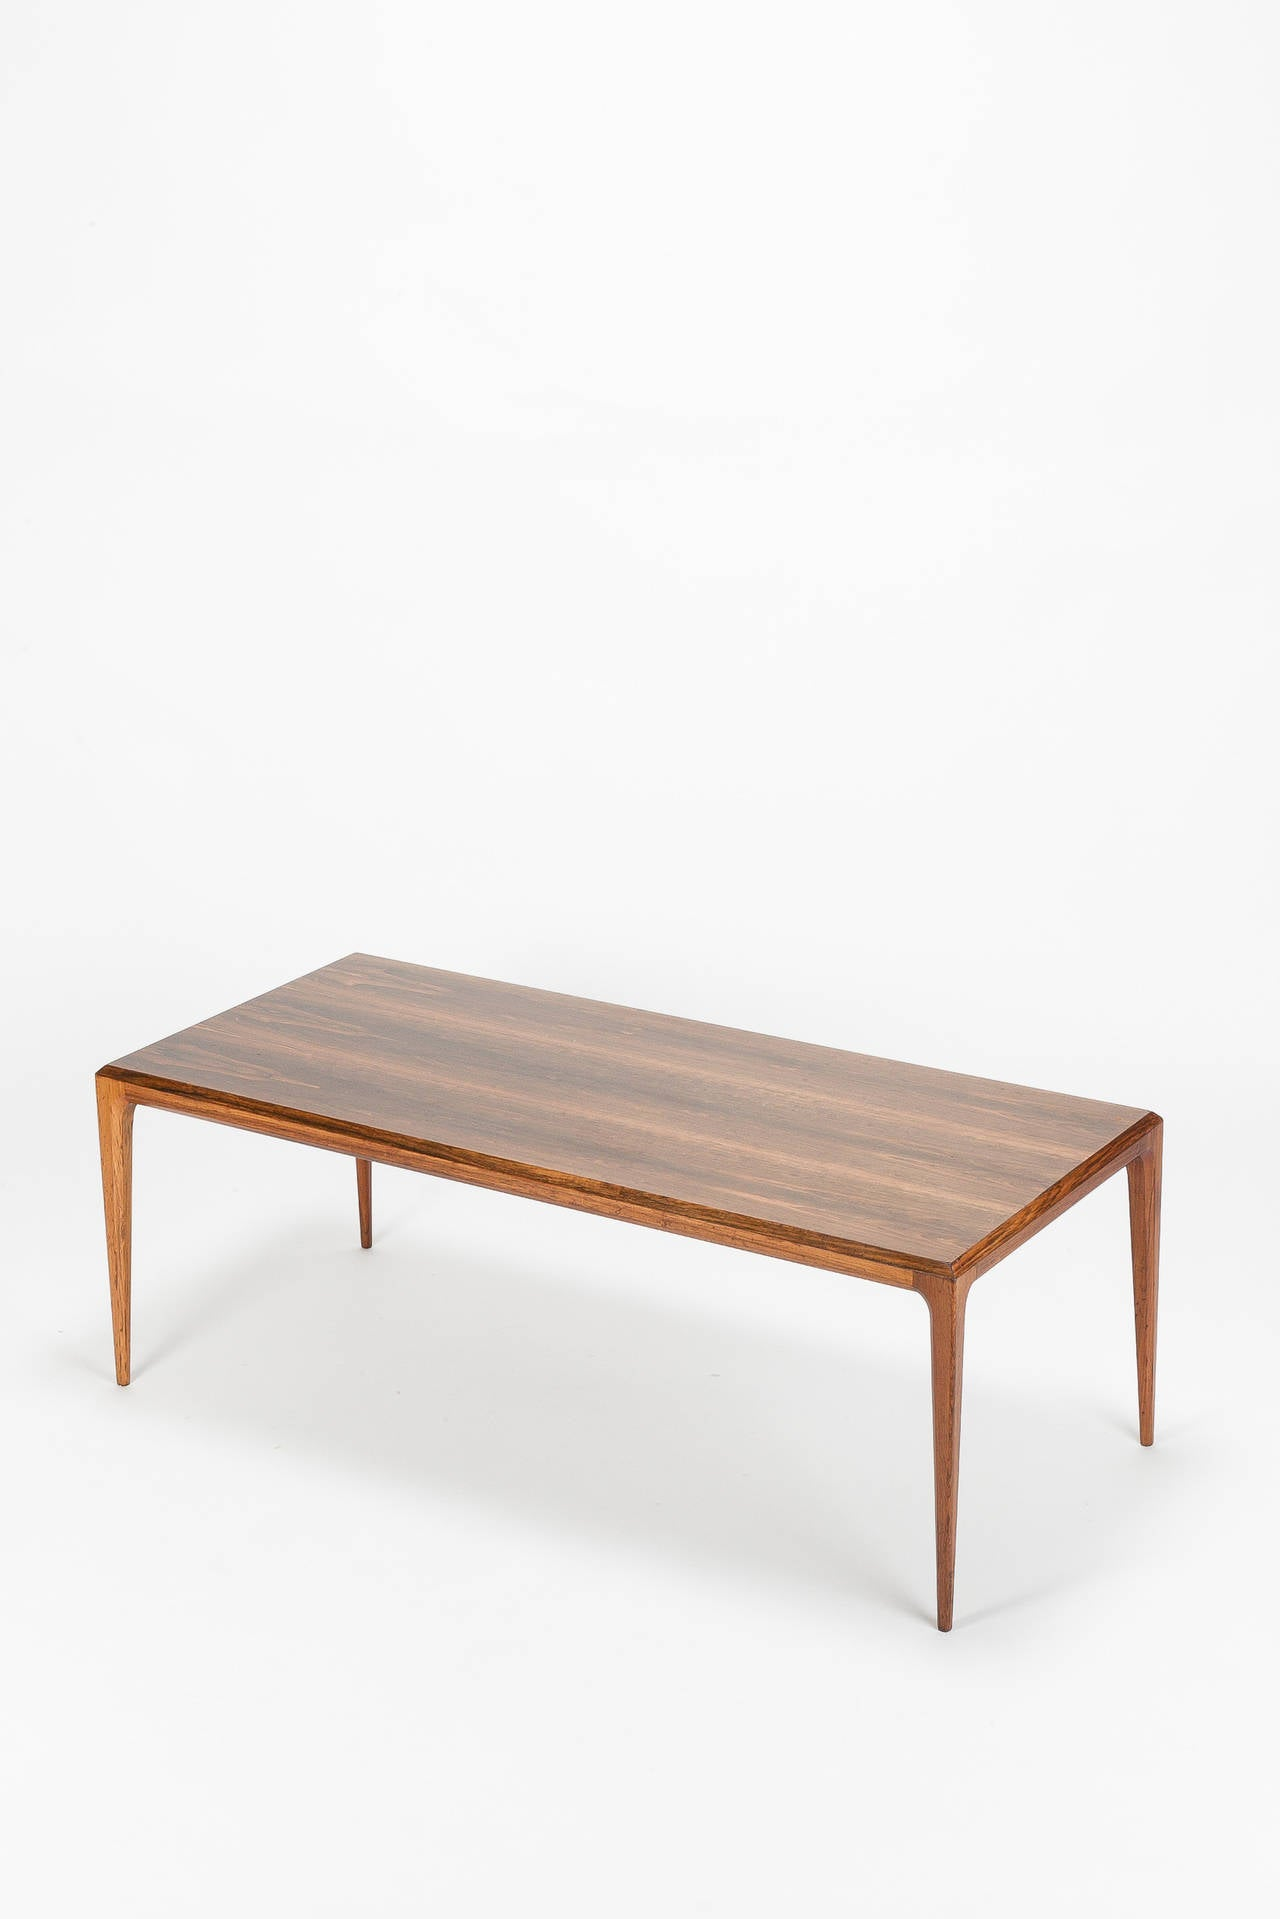 Danish coffee table designed by Johannes Andersen for CFC Silkeborg in Denmark, 1960s. Made of beautiful grained rosewood, very unique and elegant shape with canted edges and conical shaped legs.